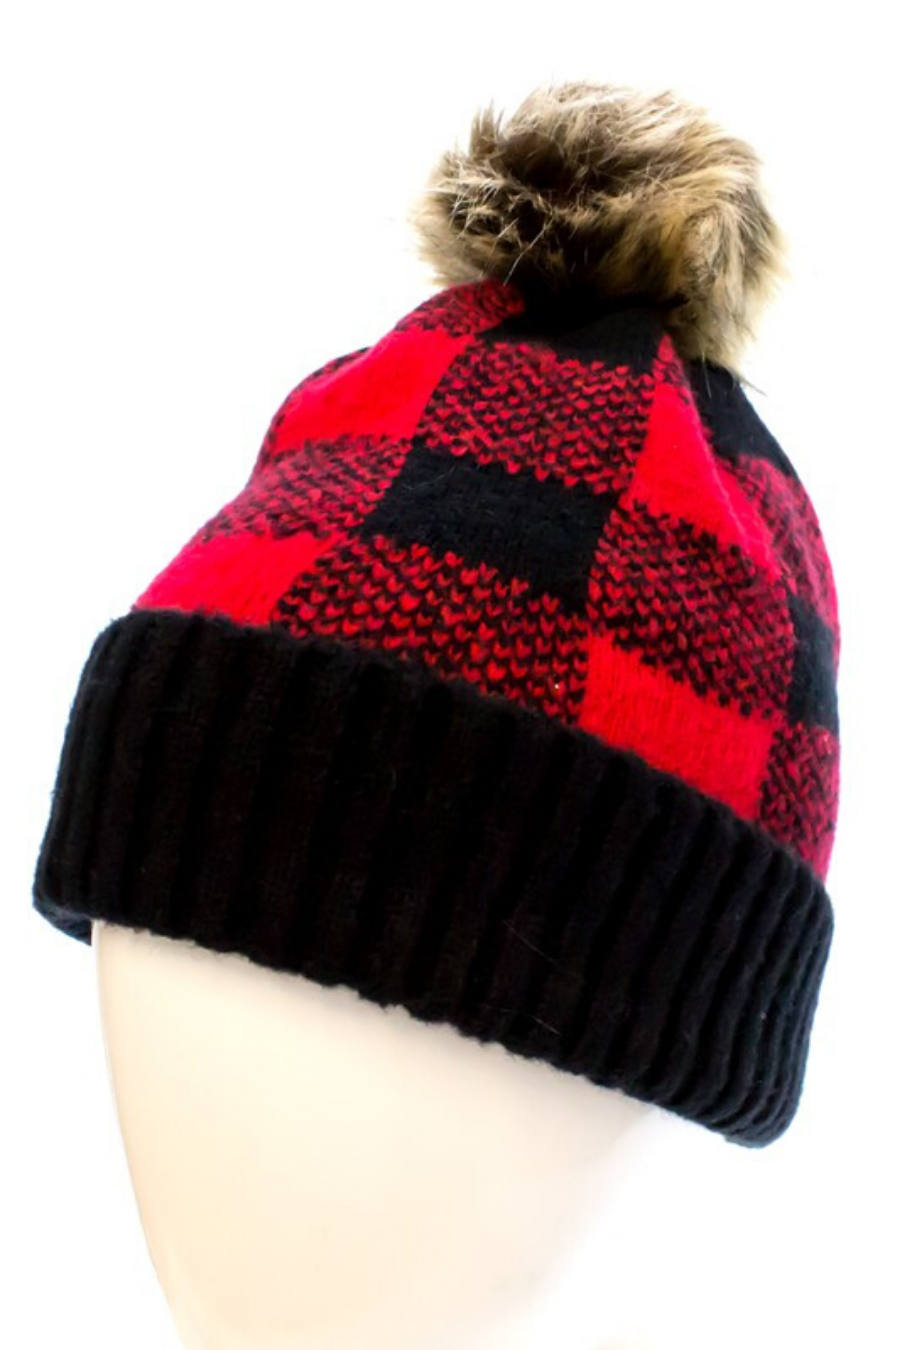 Buffalo plaid hat with removable pom